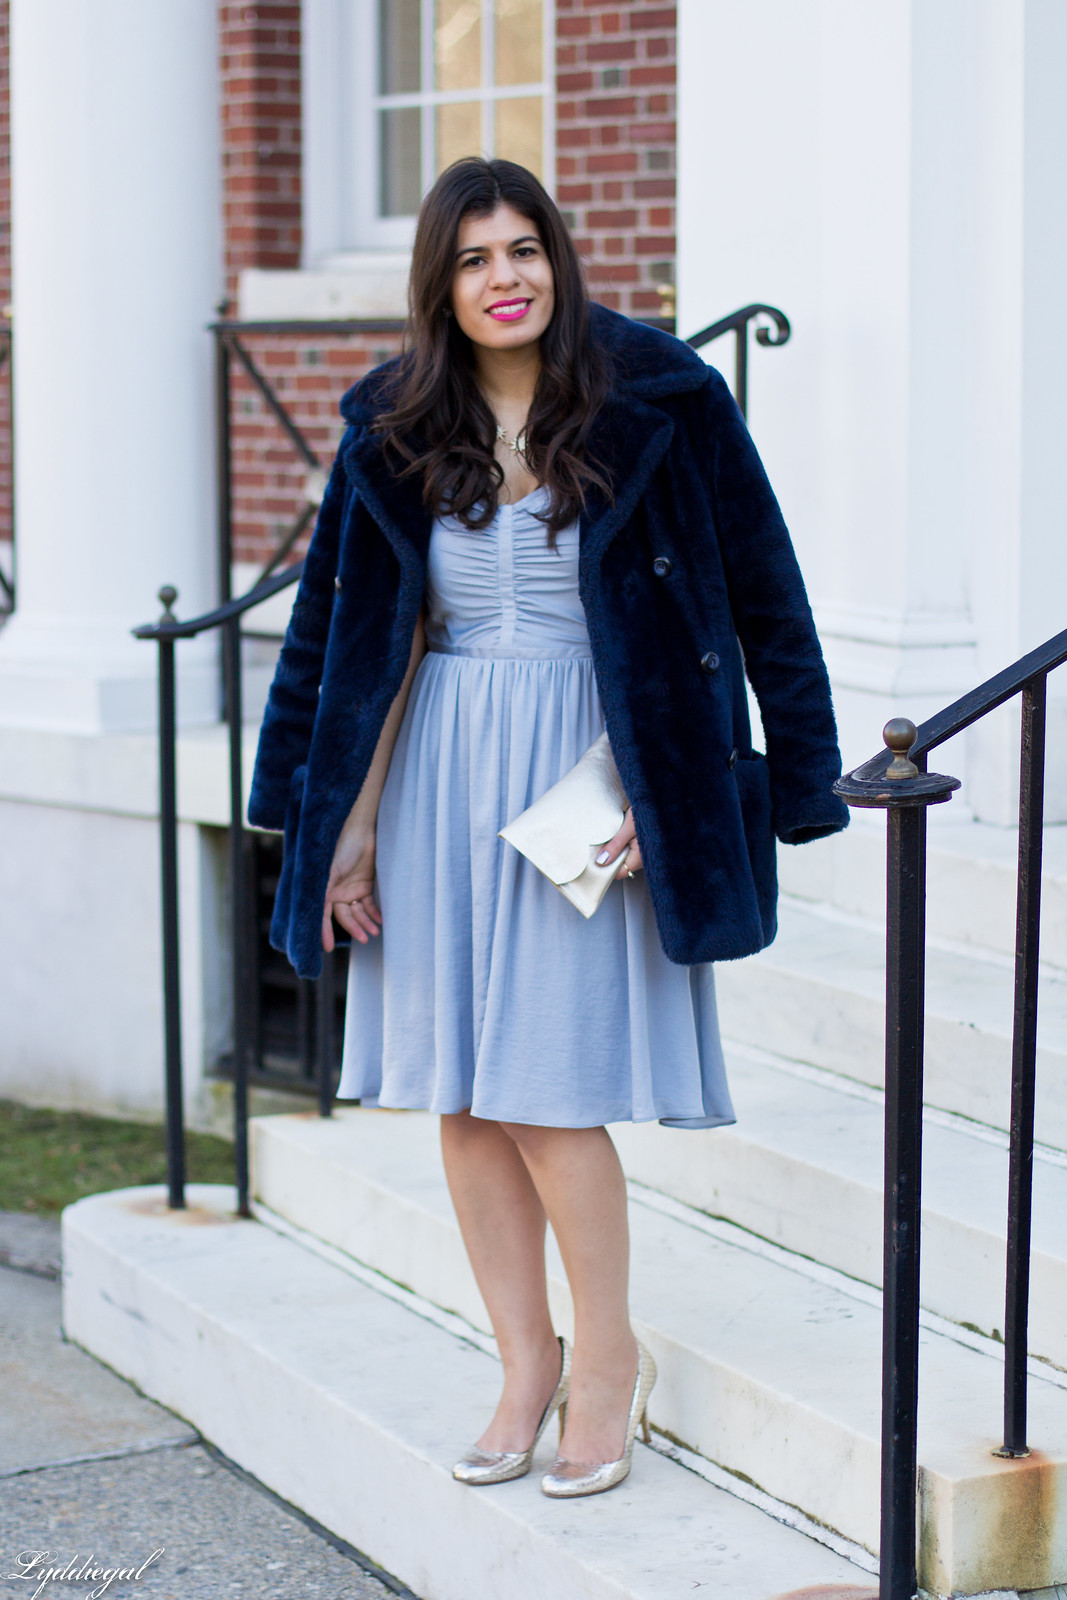 shirred silk dress, matine scalloped silver clutch, navy fur coat.jpg